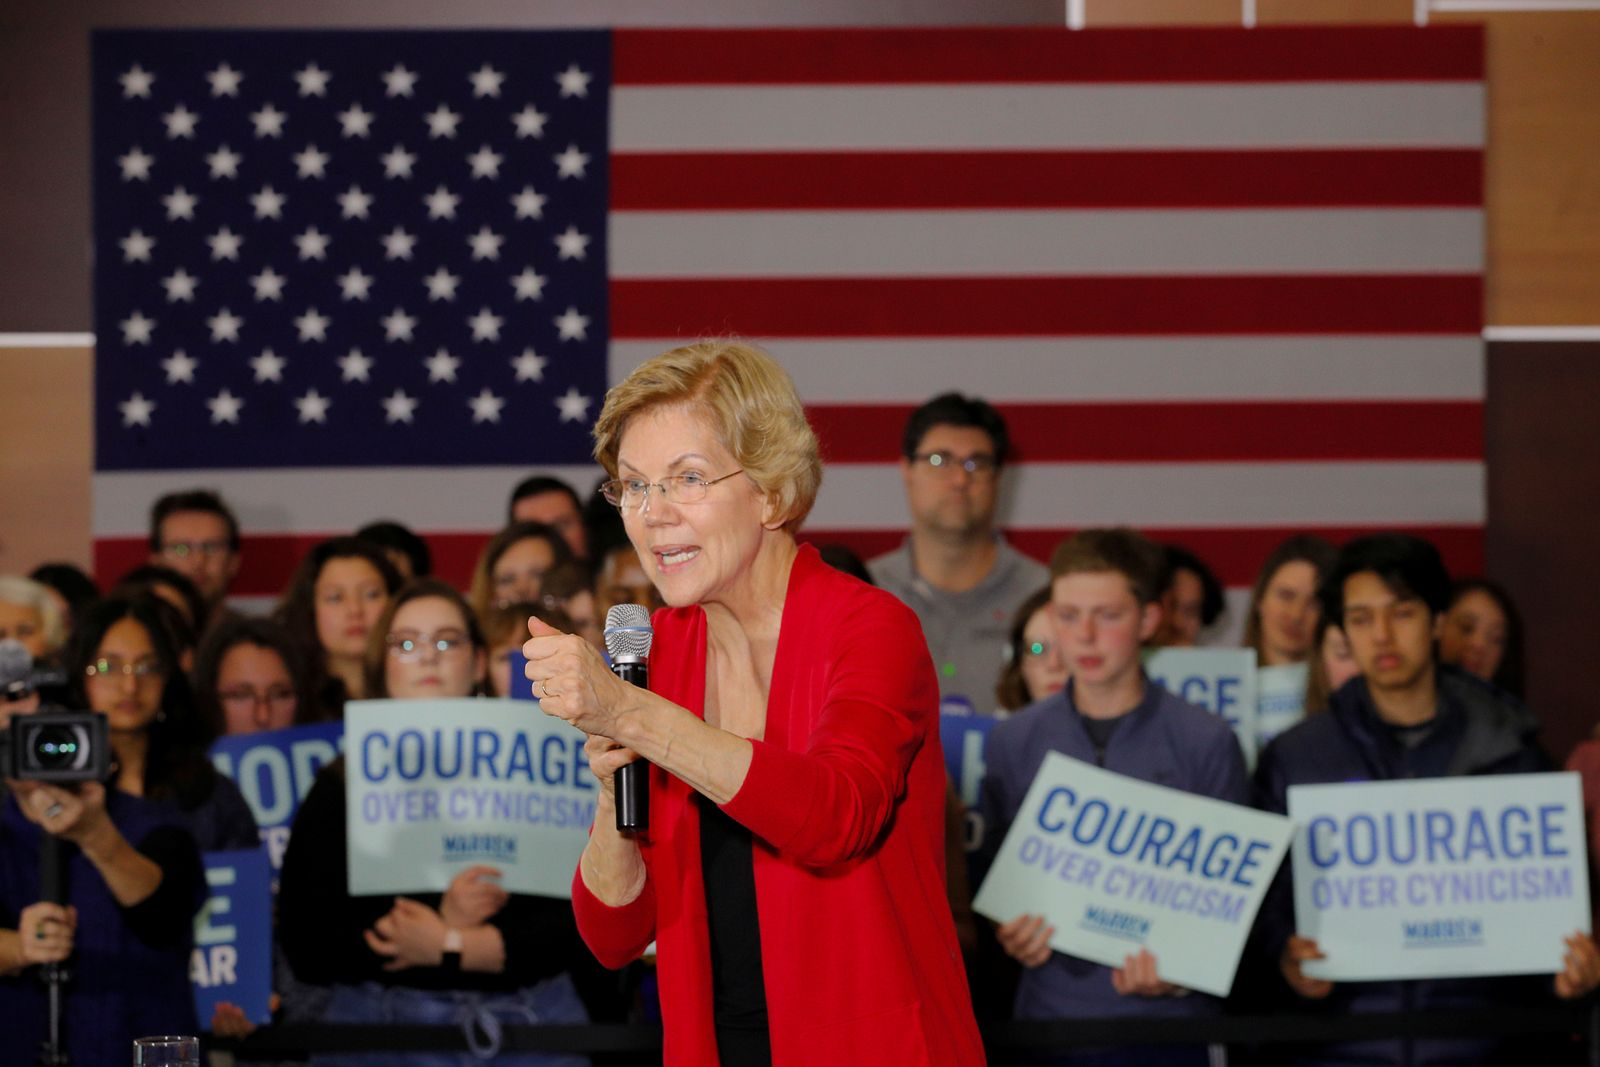 Democratic 2020 U.S. presidential candidate Warren holds a Get Out the Caucus rally in Indianola